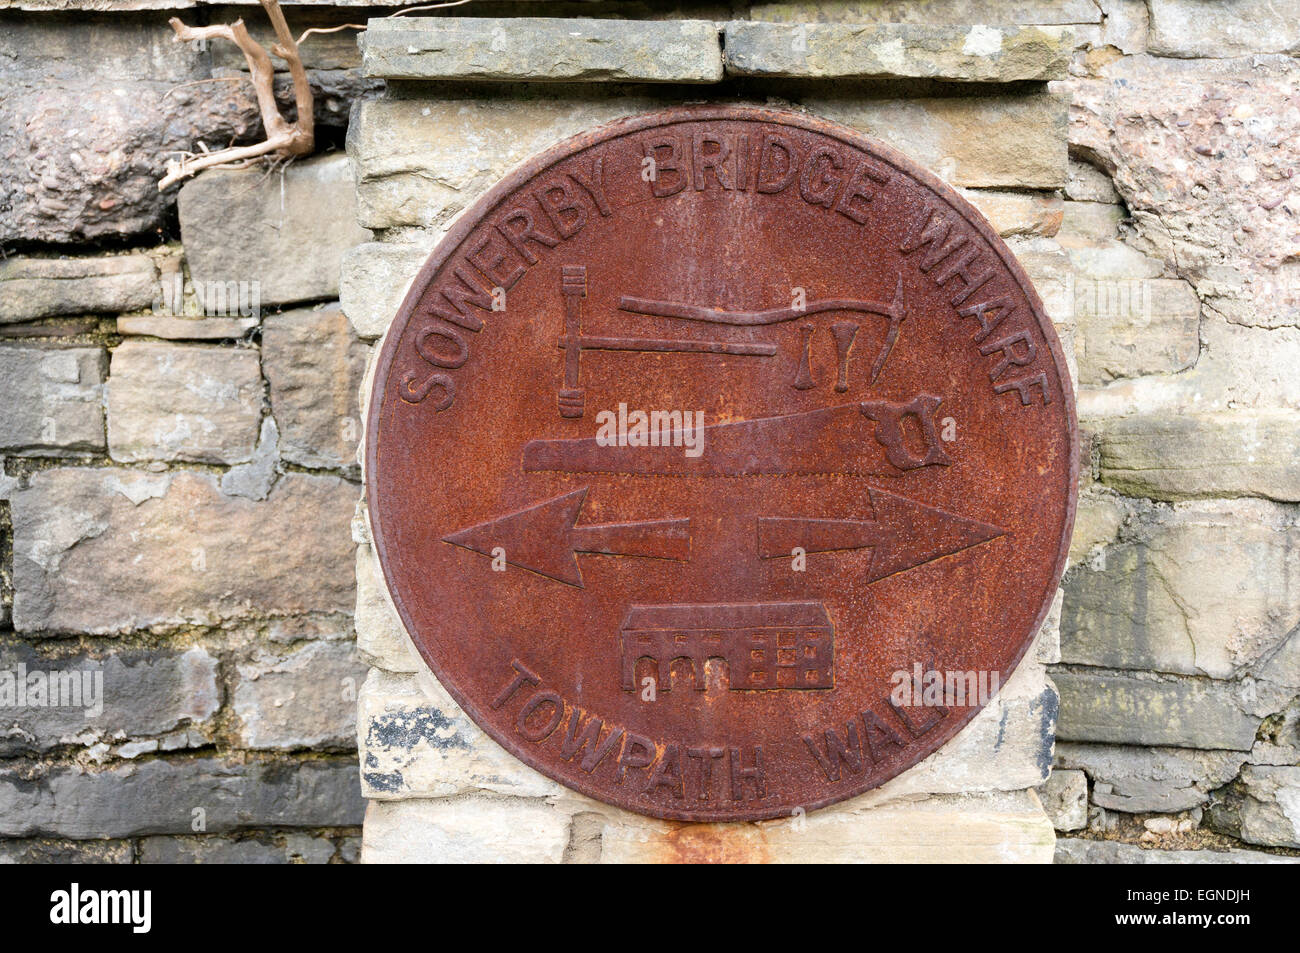 Sign for Towpath Walk on a canalside wall, Sowerby Bridge, West Yorkshire - Stock Image